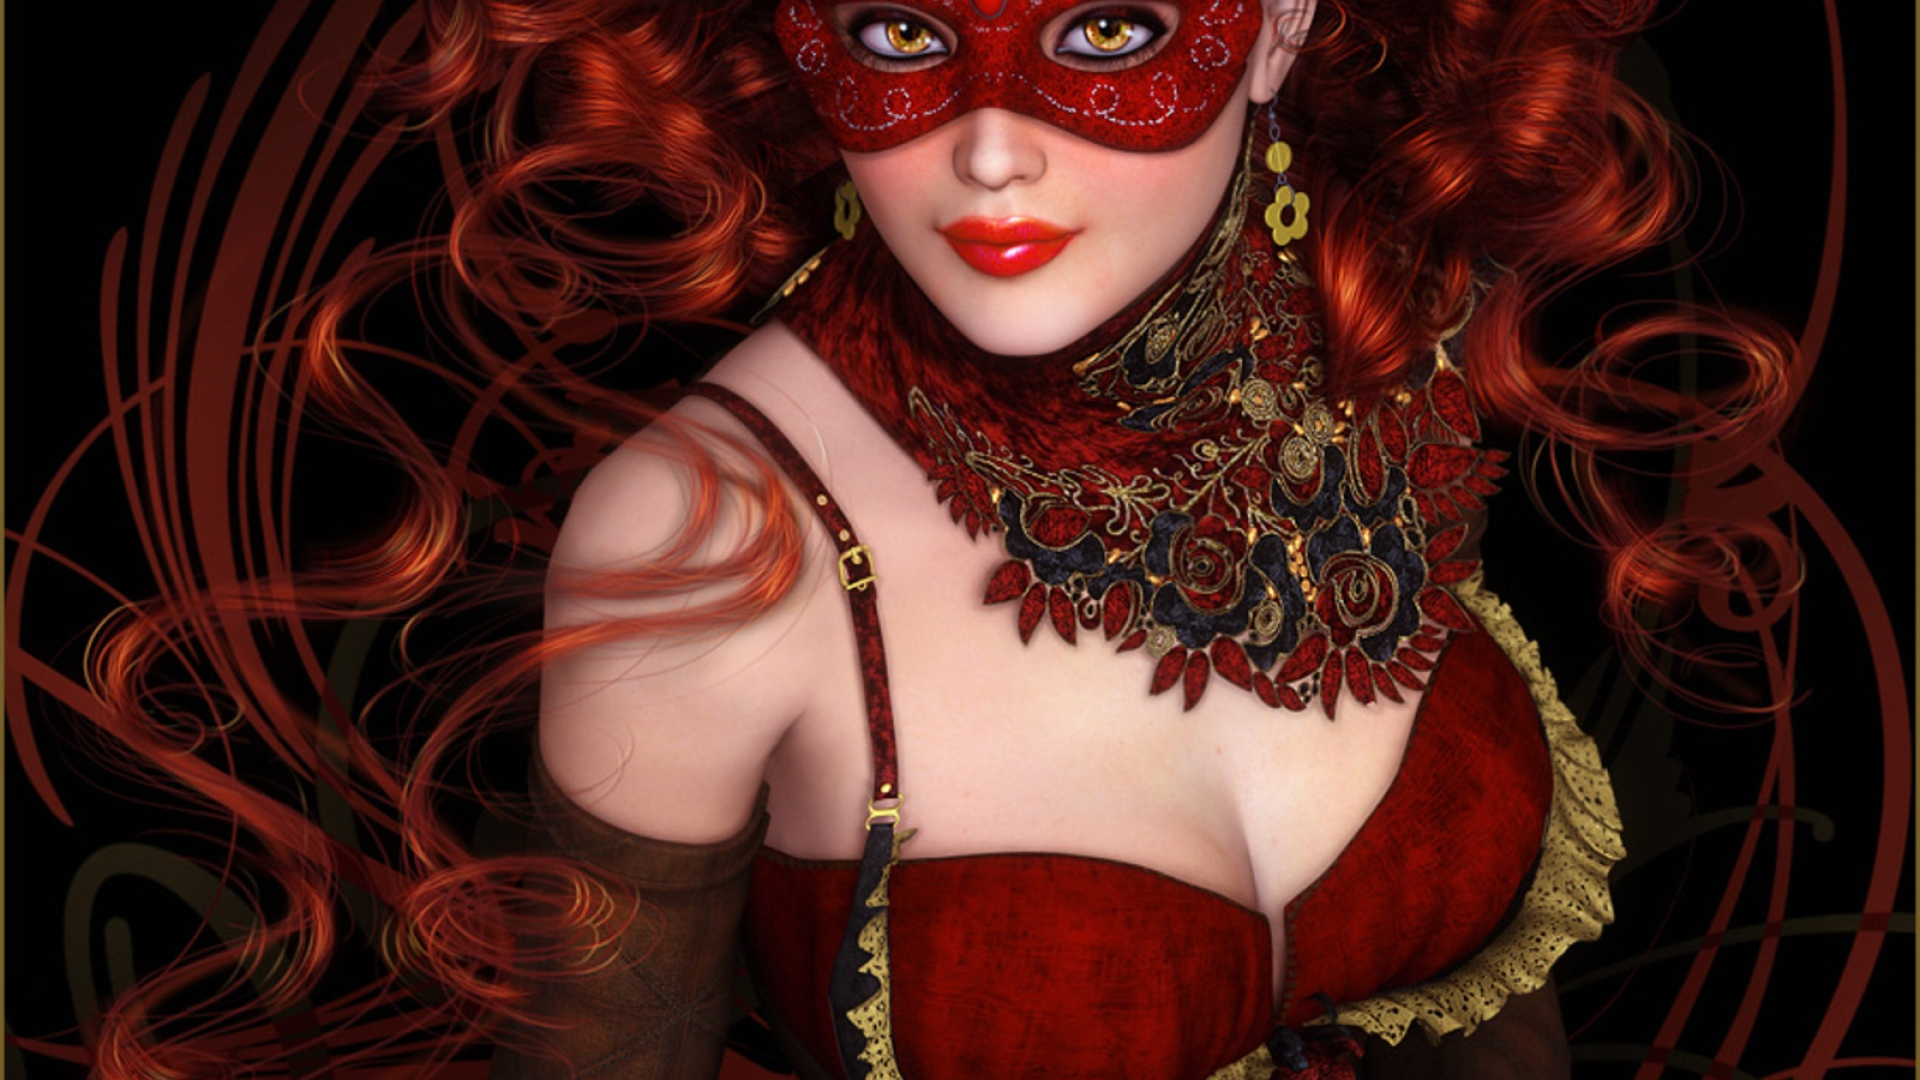 girl-mask-person-curls-dress-smile-1920x1080